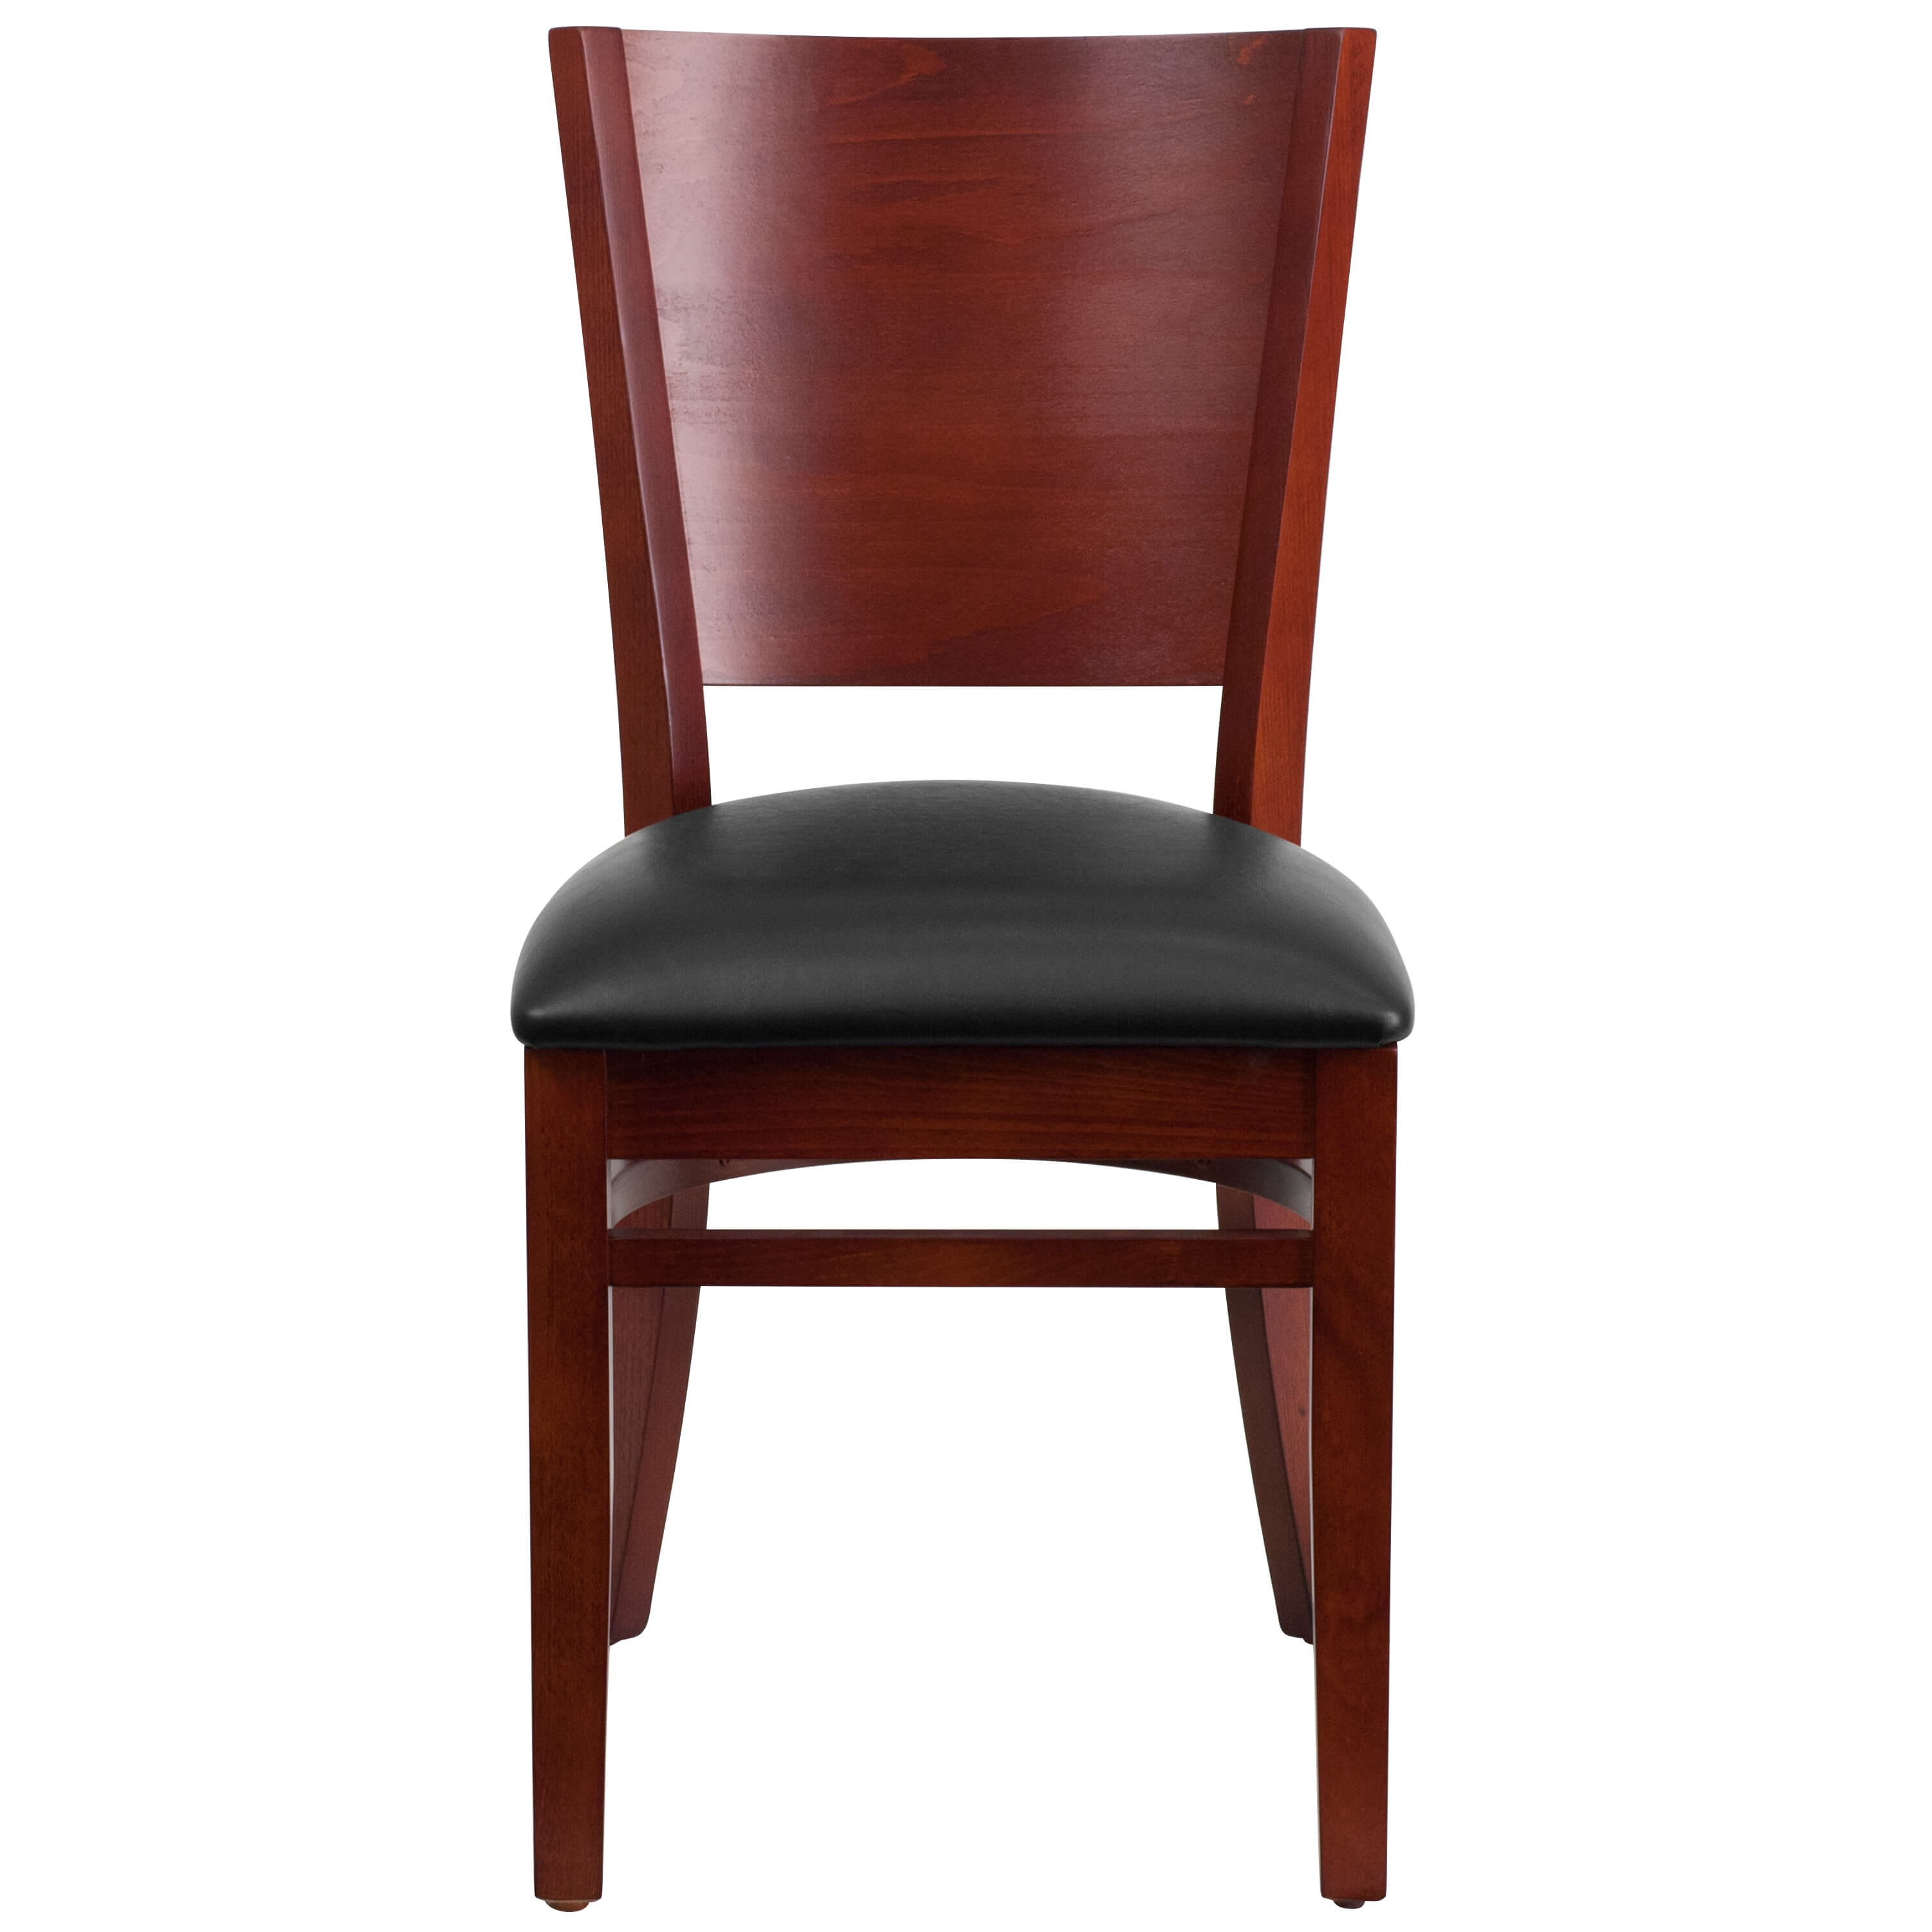 Solid wood dining chairs front view